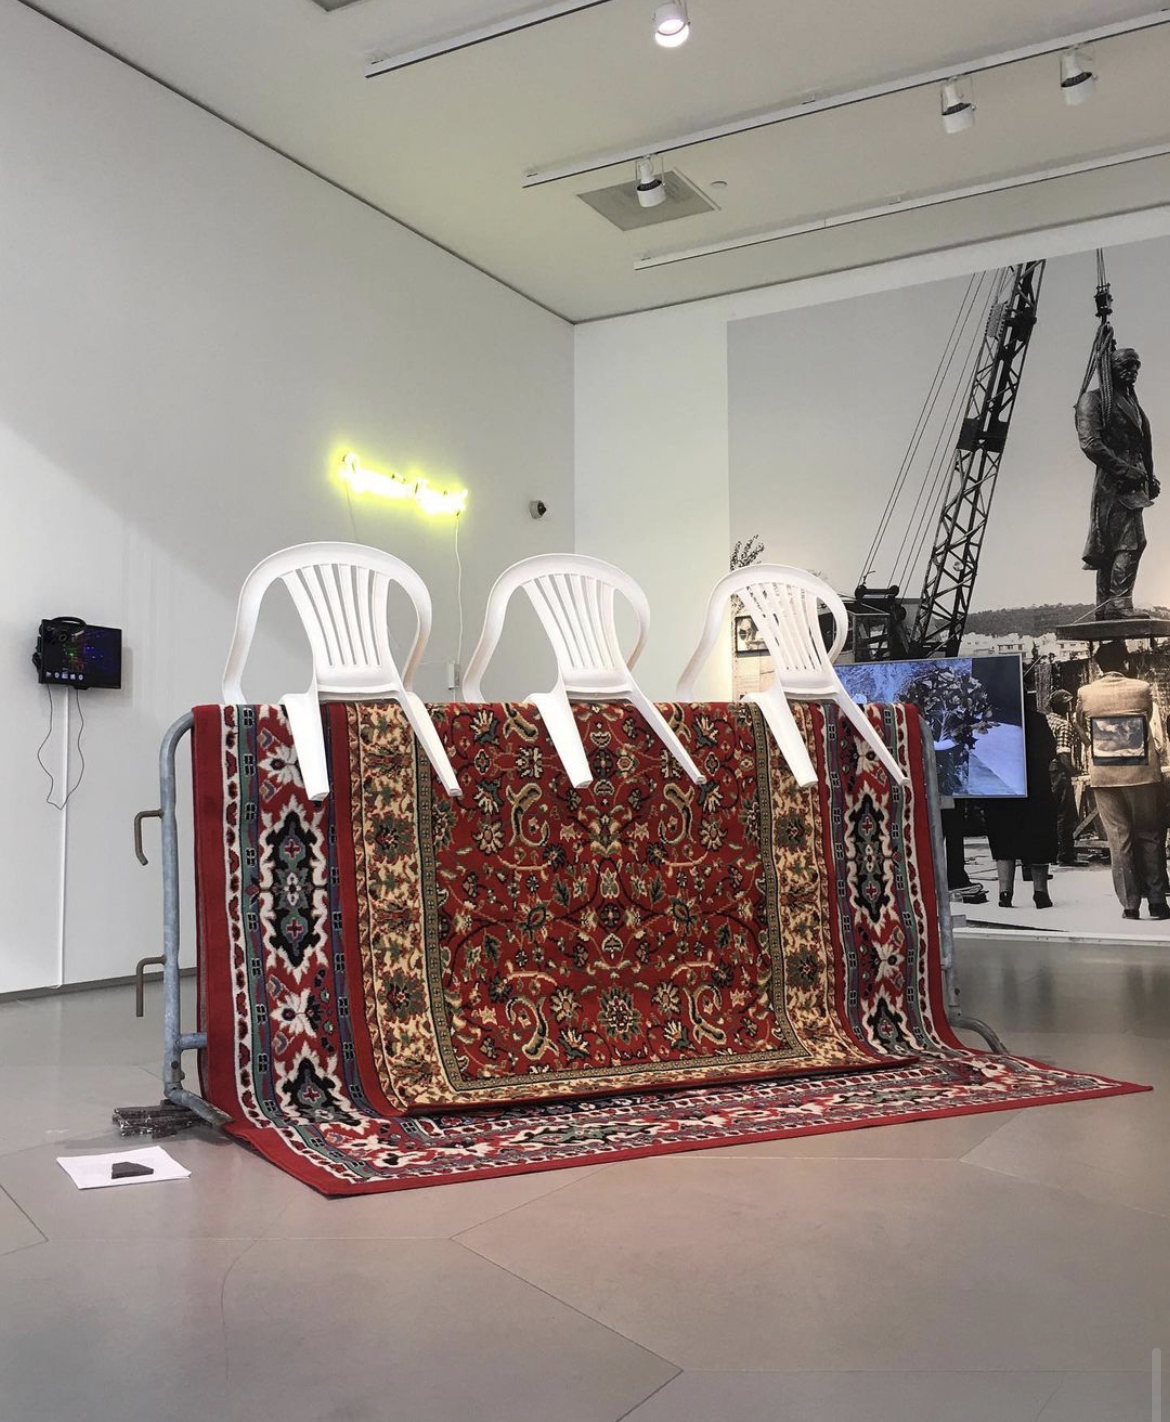 Installation View, She doesn't wear earrings till this day, 2020, barricade, rugs, plastic chairs, marble, text, dimensions variable